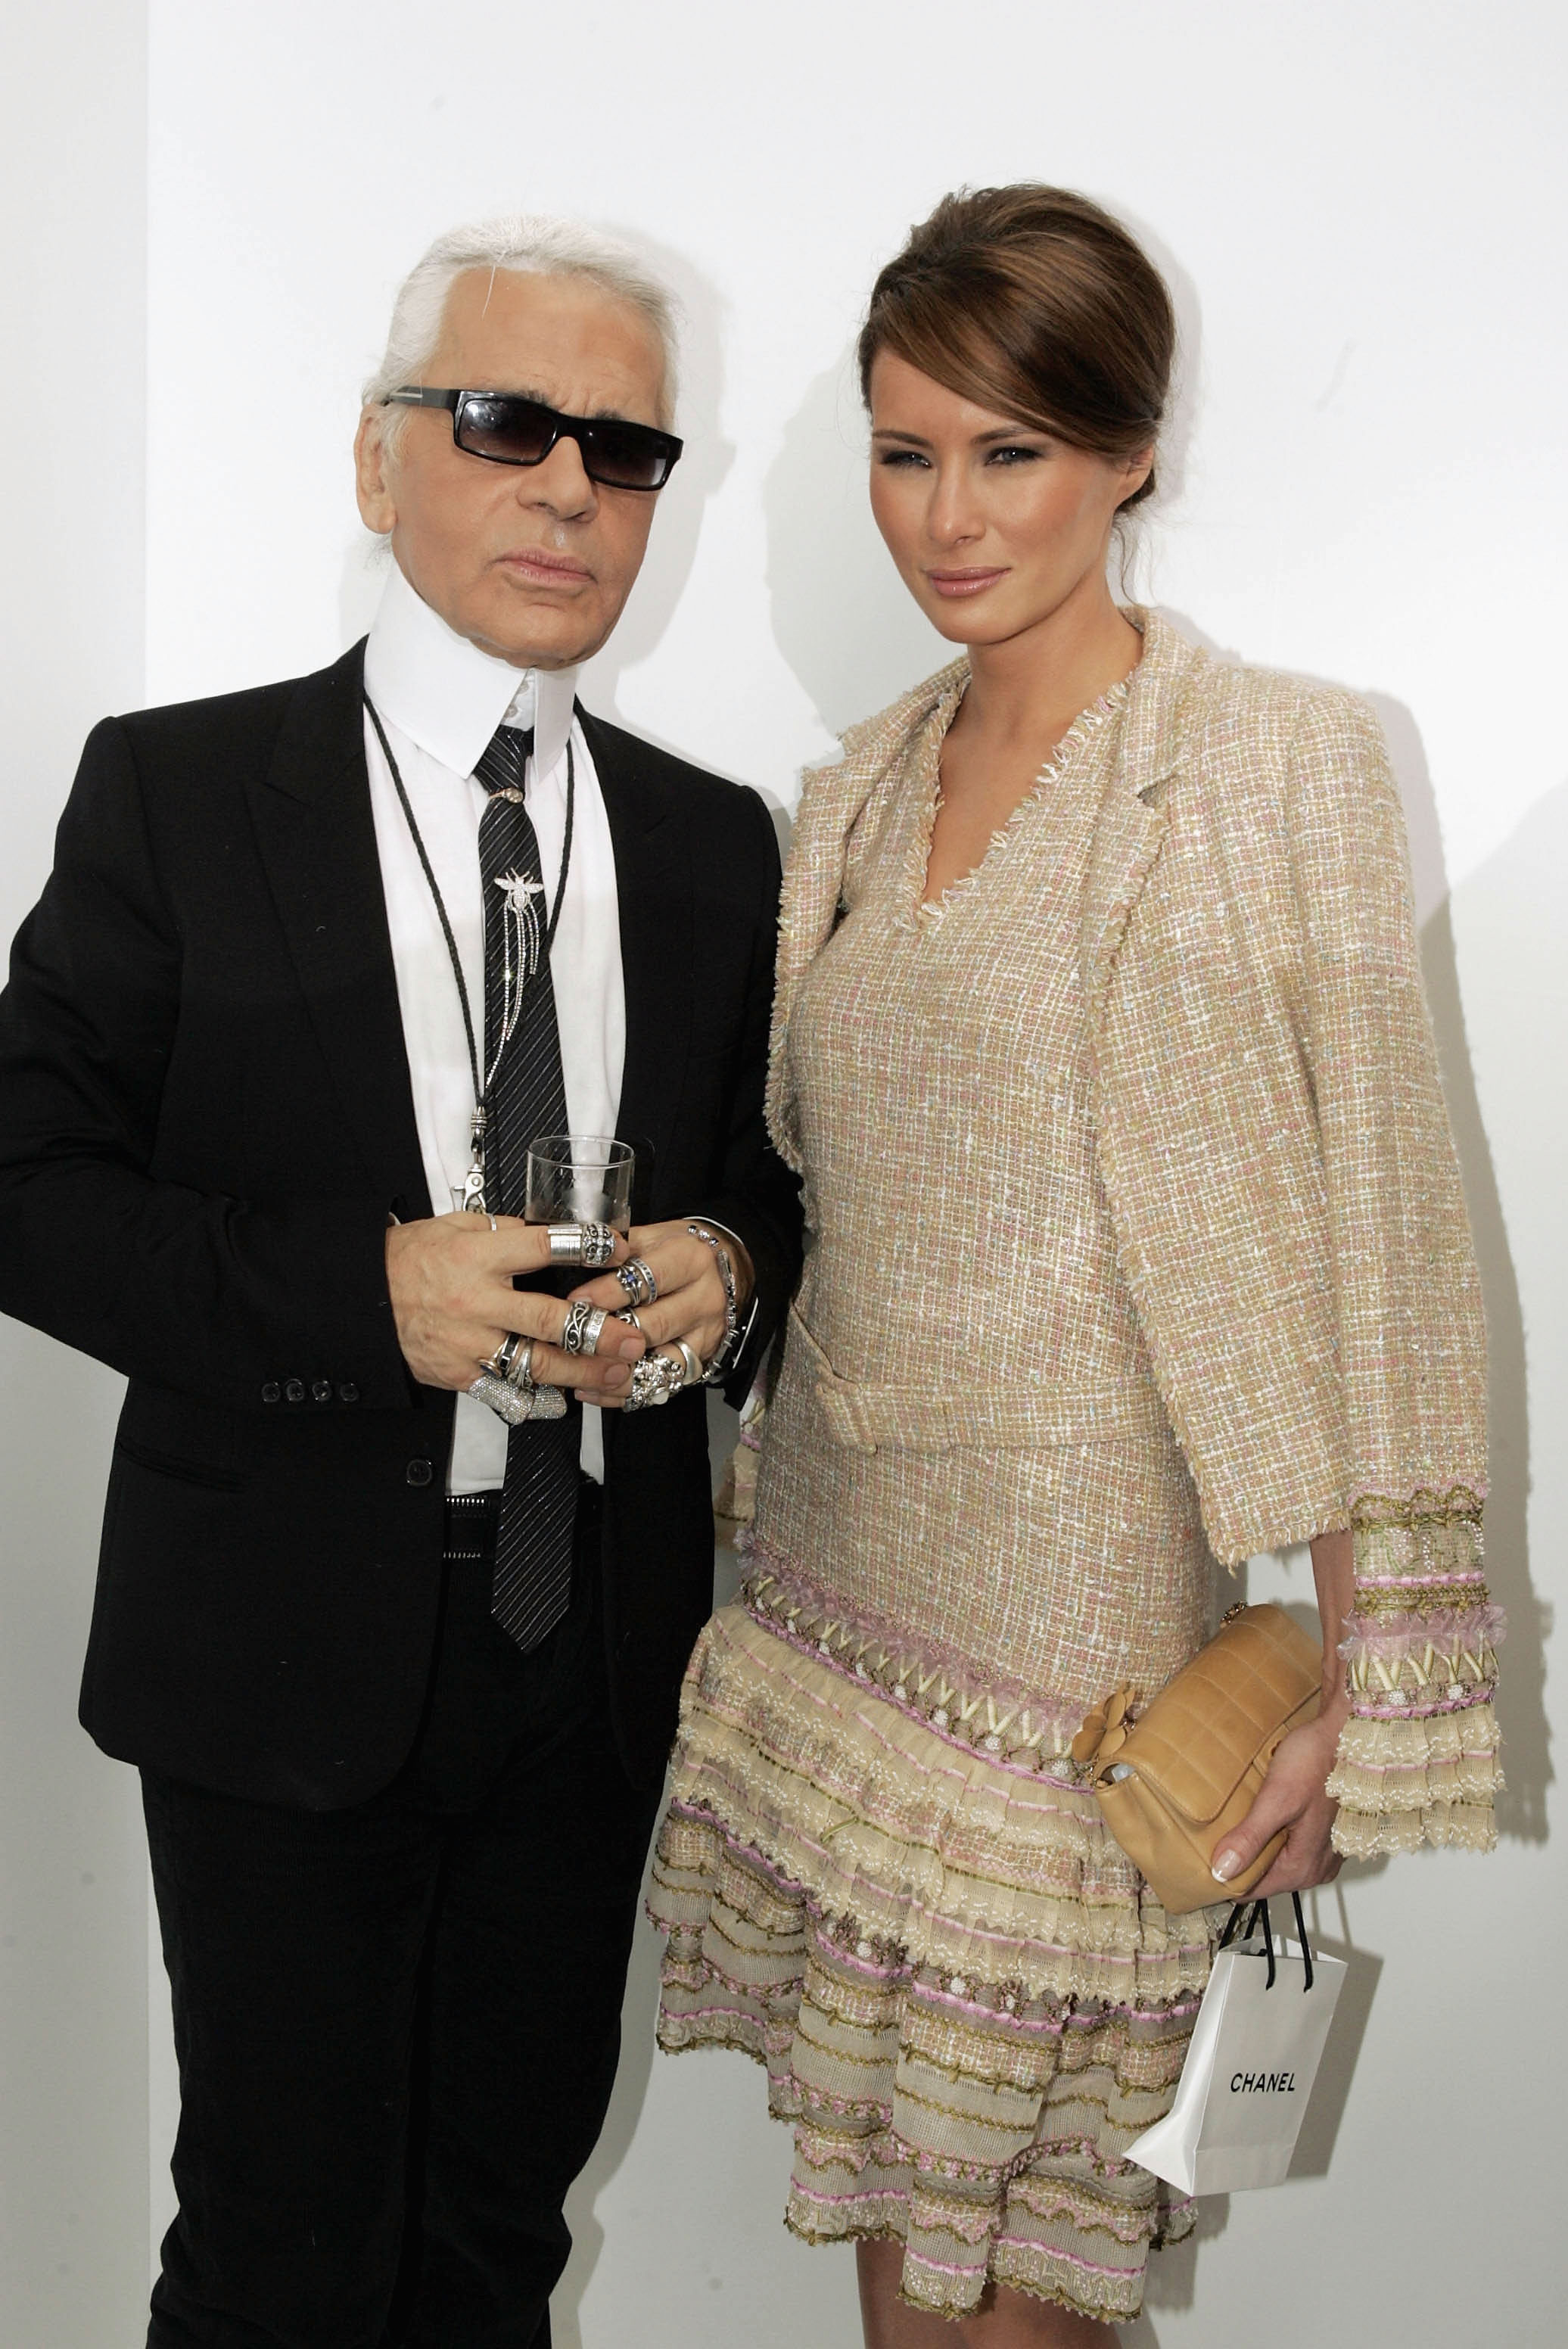 """<p>With Donald Trump as President of the US there will be two models moving through the White House with former runway regular Ivana Trump one of the First Daughters and former swimsuit model Melania Trump as First Lady.<br> Internationally it's not an unprecedented move with former supermodel Carla Bruni having gained admiration in Dior as Premier Madam of France but Melania's style is less well known.<br> Melania has fashionable shoes to fill with Michelle Obama having successfully championed US designers such as Jason Wu, Tracy Reese and Derek Lam.<br> Meanwhile, Melania in the past has shown a preference for international labels such as Gucci (who can forget that <a href=""""http://style.nine.com.au/2016/10/11/10/12/melania-trump-pussybow-blouse-pink-gucci"""" target=""""_blank"""">pussy bow blouse</a>?) and Roksanda.<br> Let's take a look at some of Melania's style moments while we wonder what her inauguration gown would look like.</p> <p>Melania Trump (nee Knauss) in Chanel with Karl Lagerfeld at Chanel, spring/summer '05, Paris.</p>"""